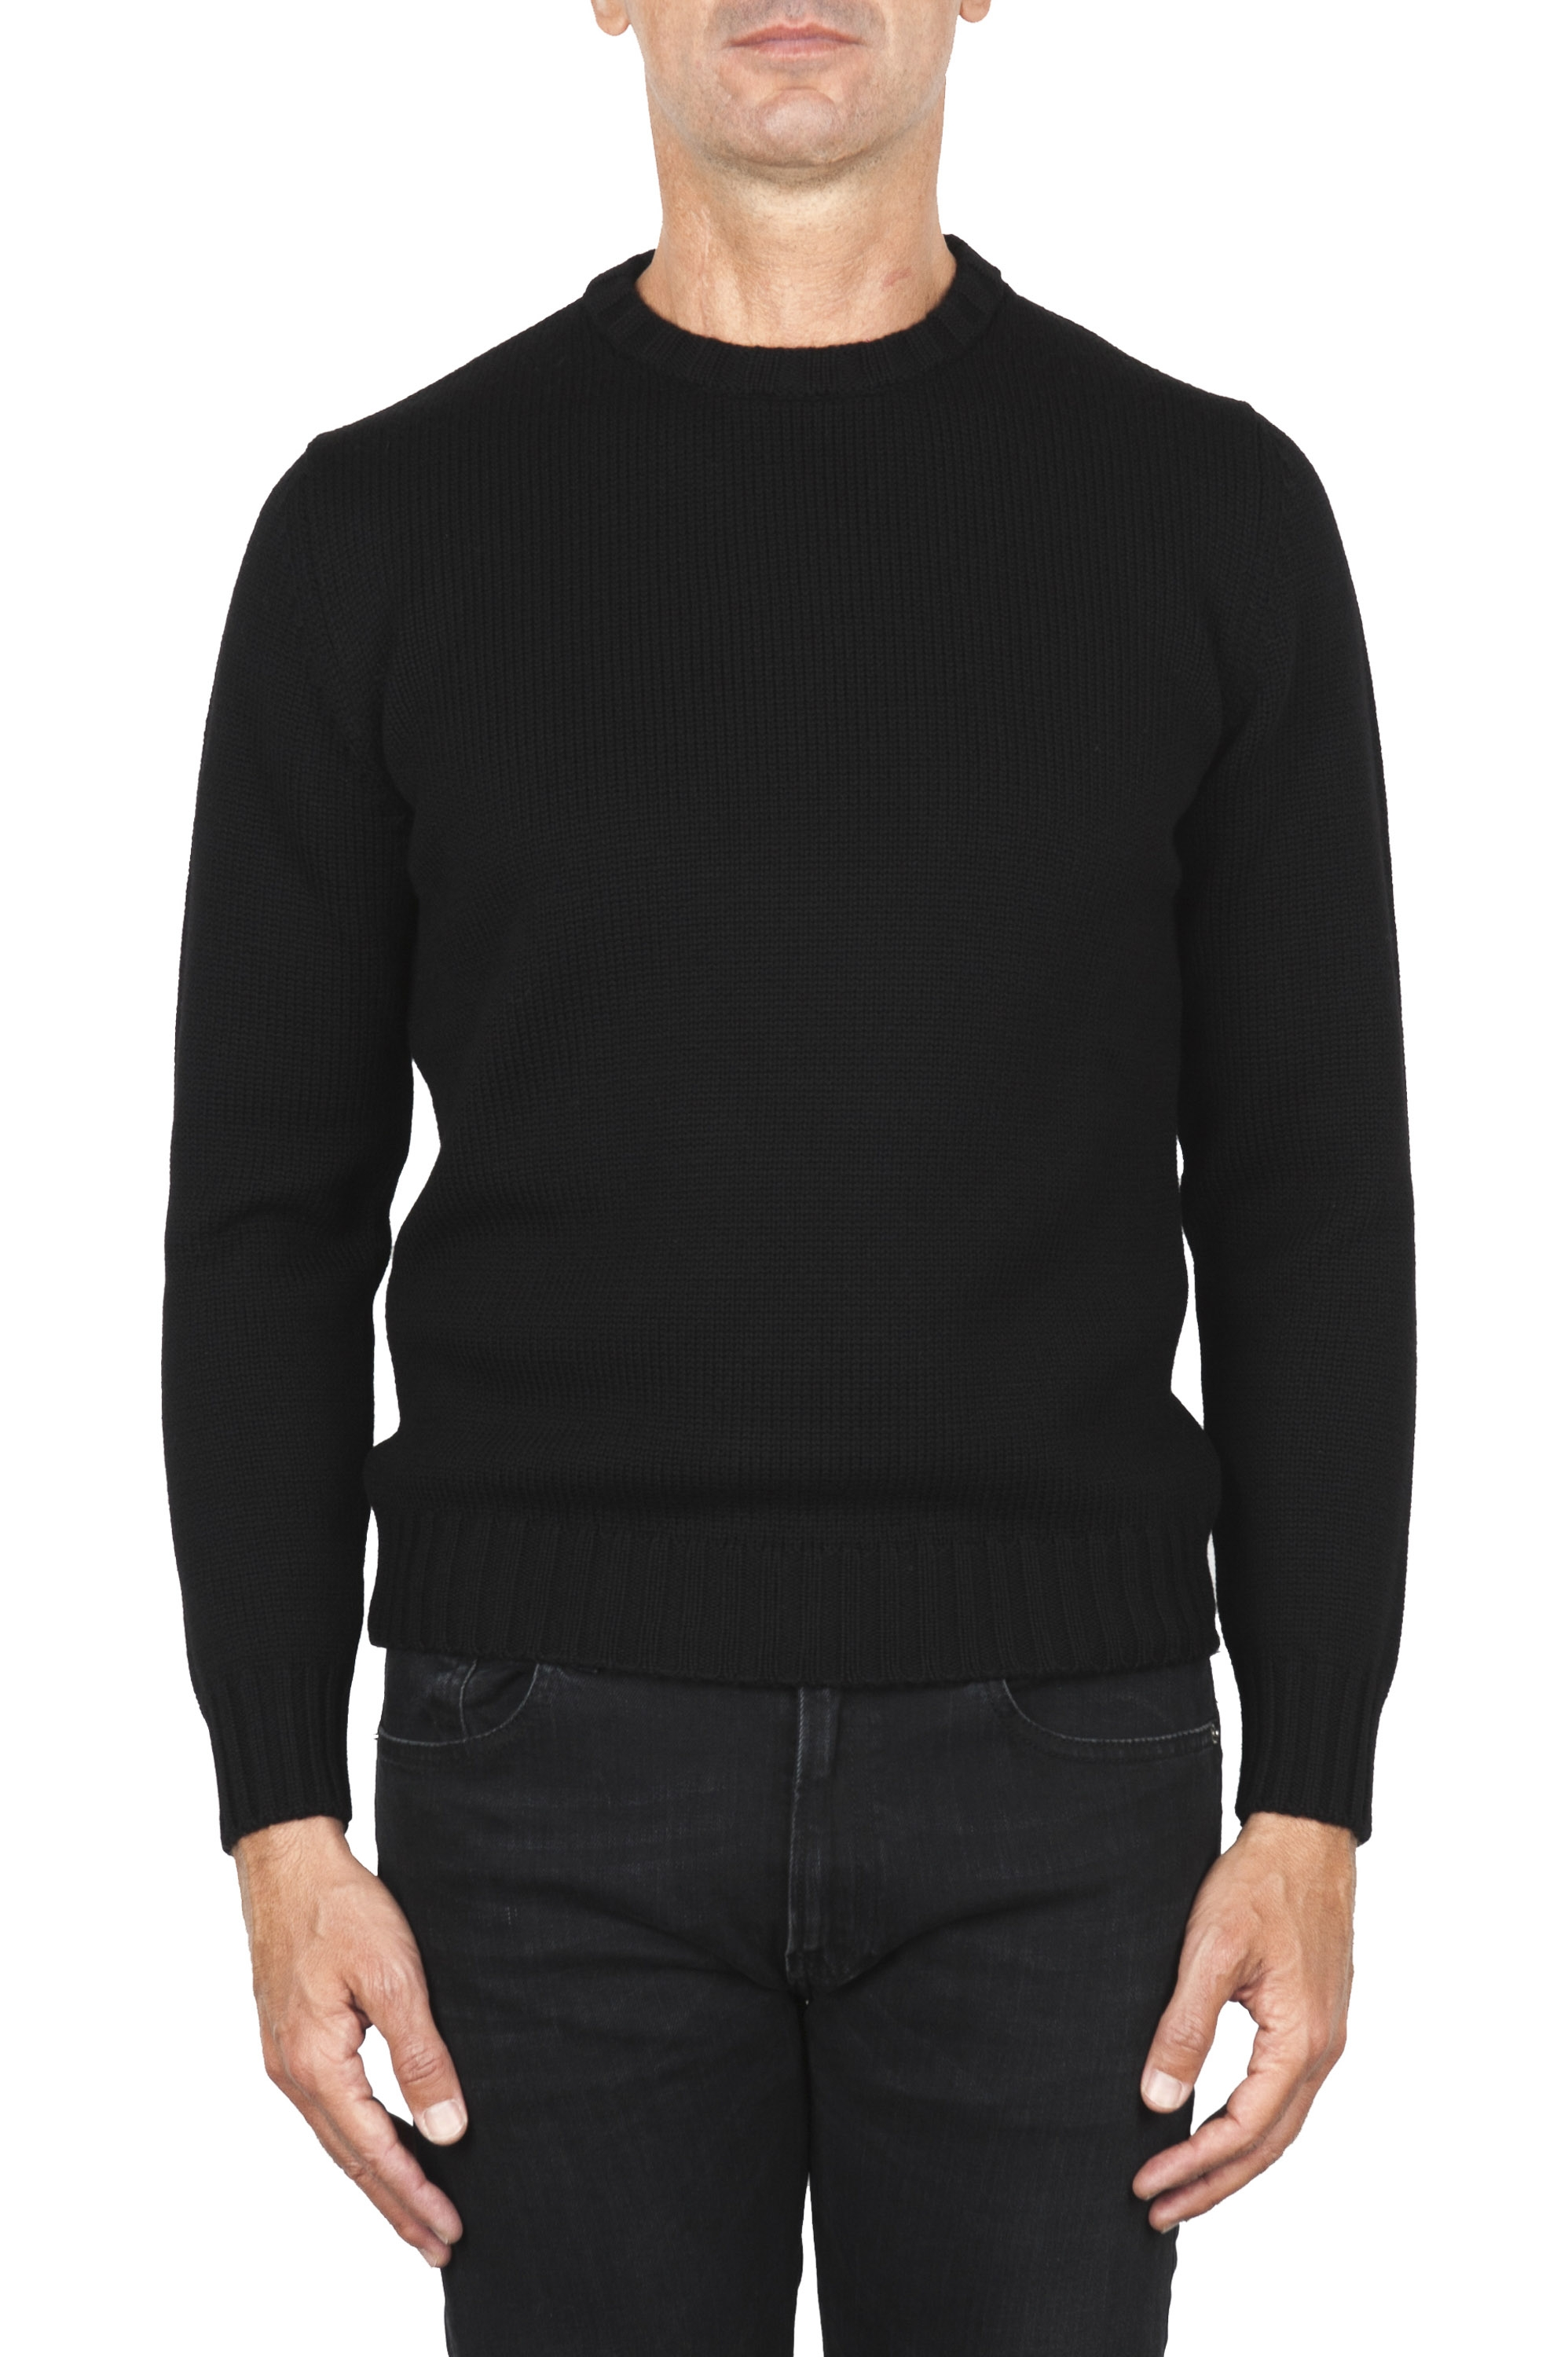 SBU 01878_19AW Black crew neck sweater in merino wool extra fine 01